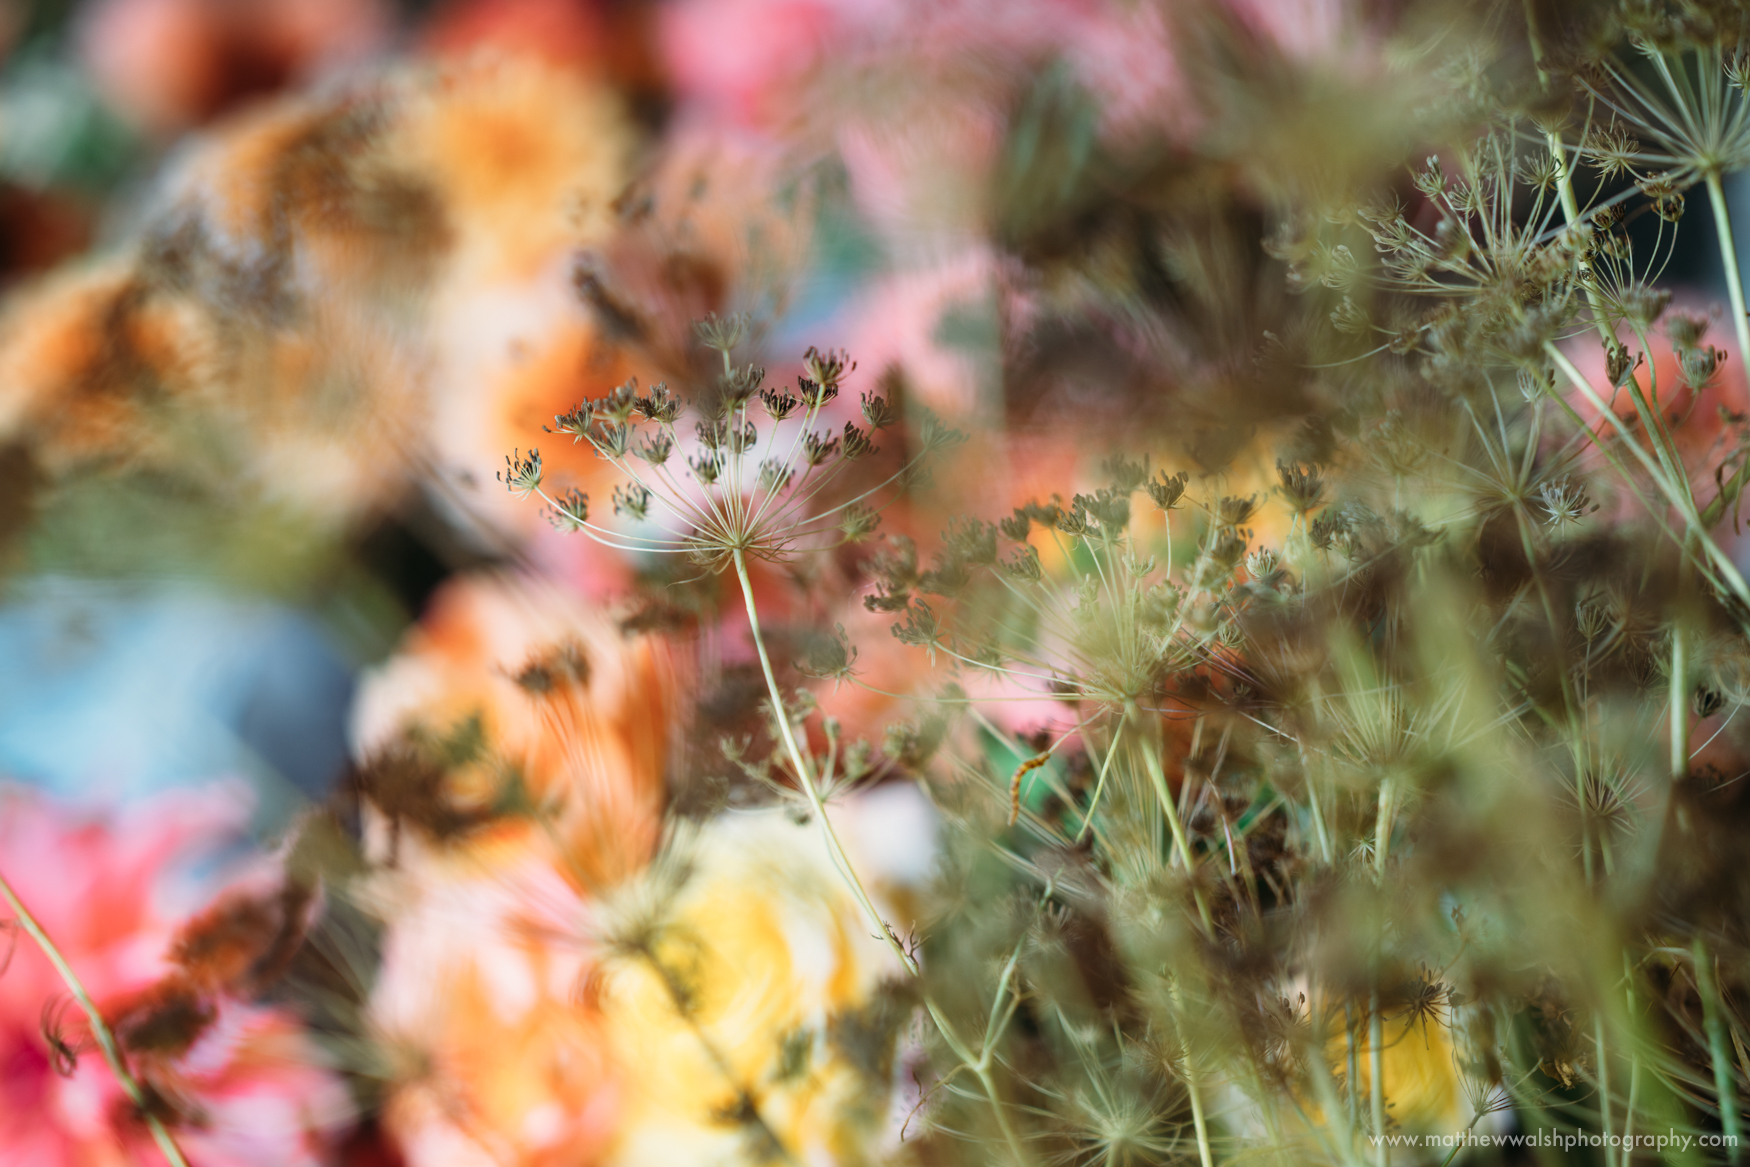 An amazing and colourful detail of the flowers